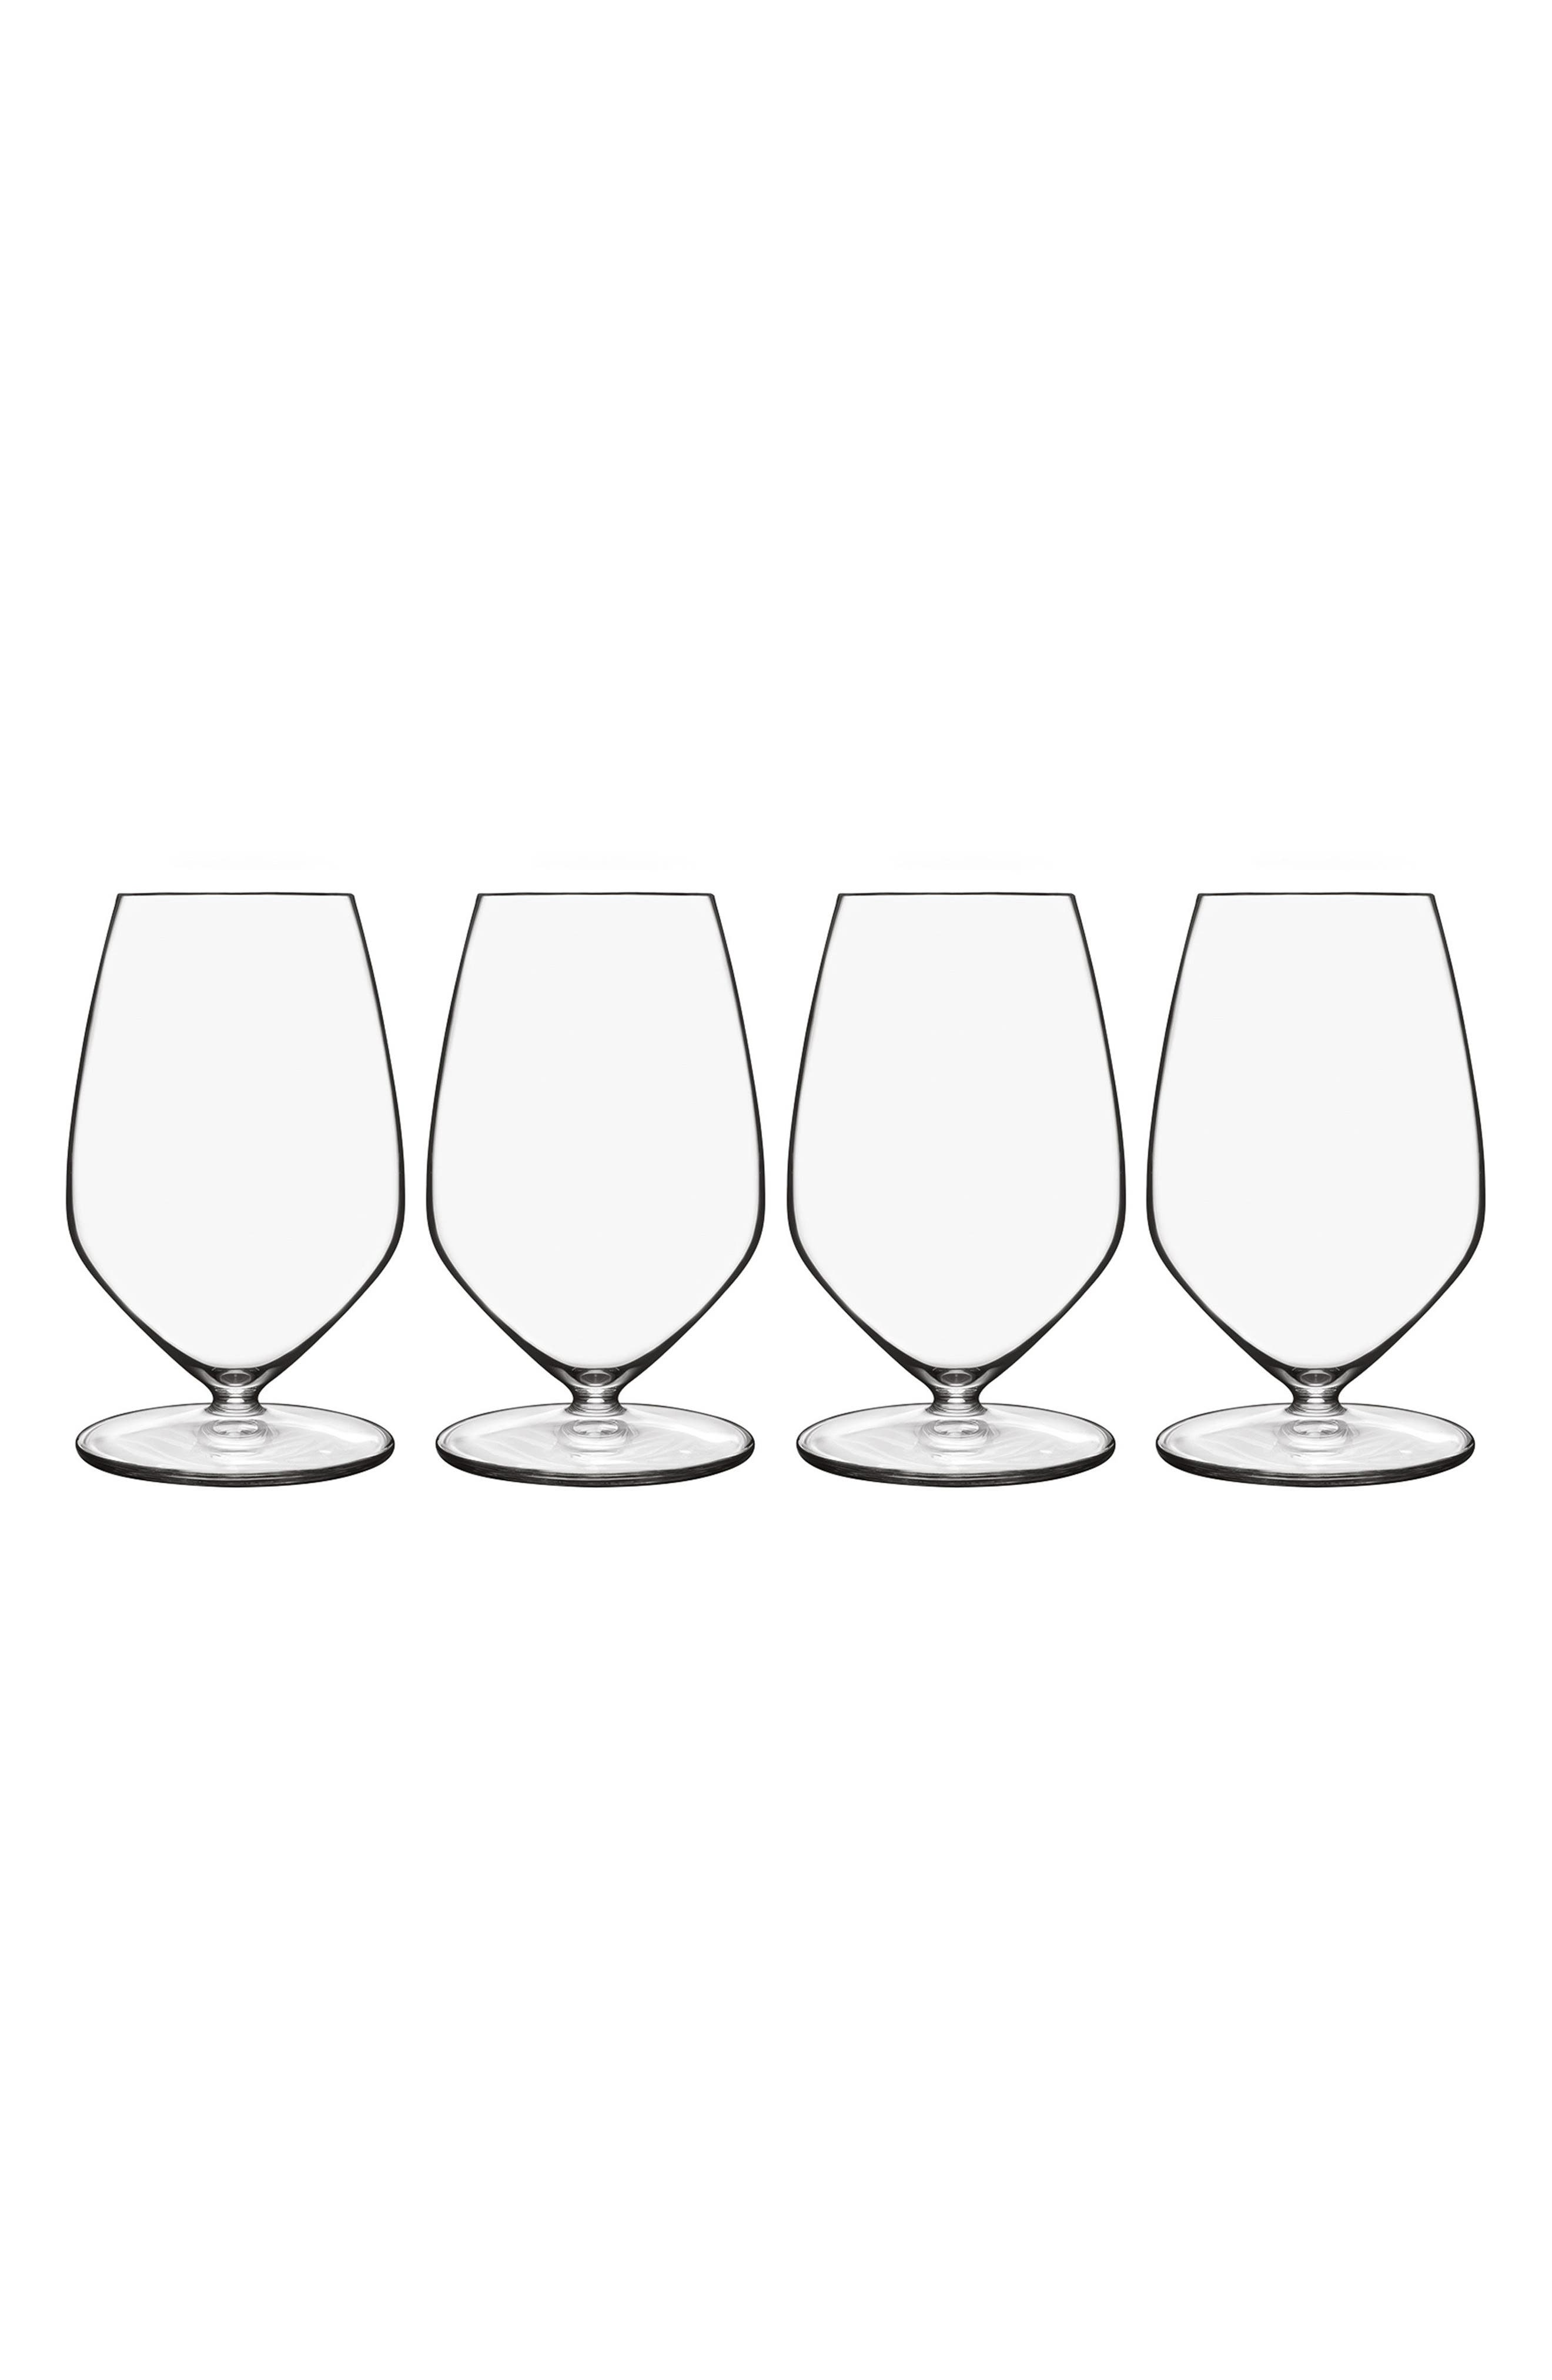 T-Glass Set of 4 Riesling Glasses,                             Main thumbnail 1, color,                             CLEAR